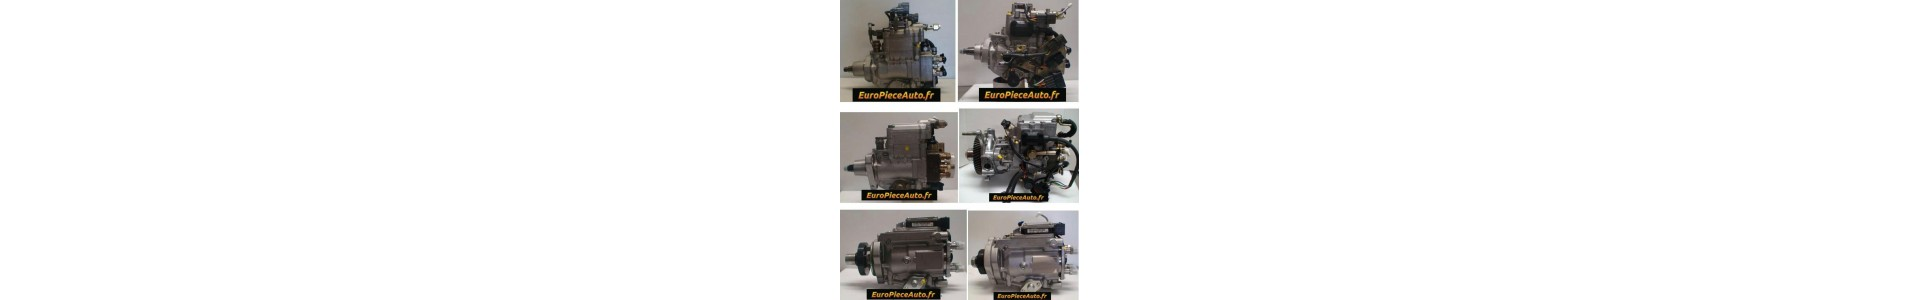 Test pompe injection controle toutes marques Bosch, Delphi, Denso, Siemens, Zexel, Yanmar, CAV, Stanadyne, Rotodiesel